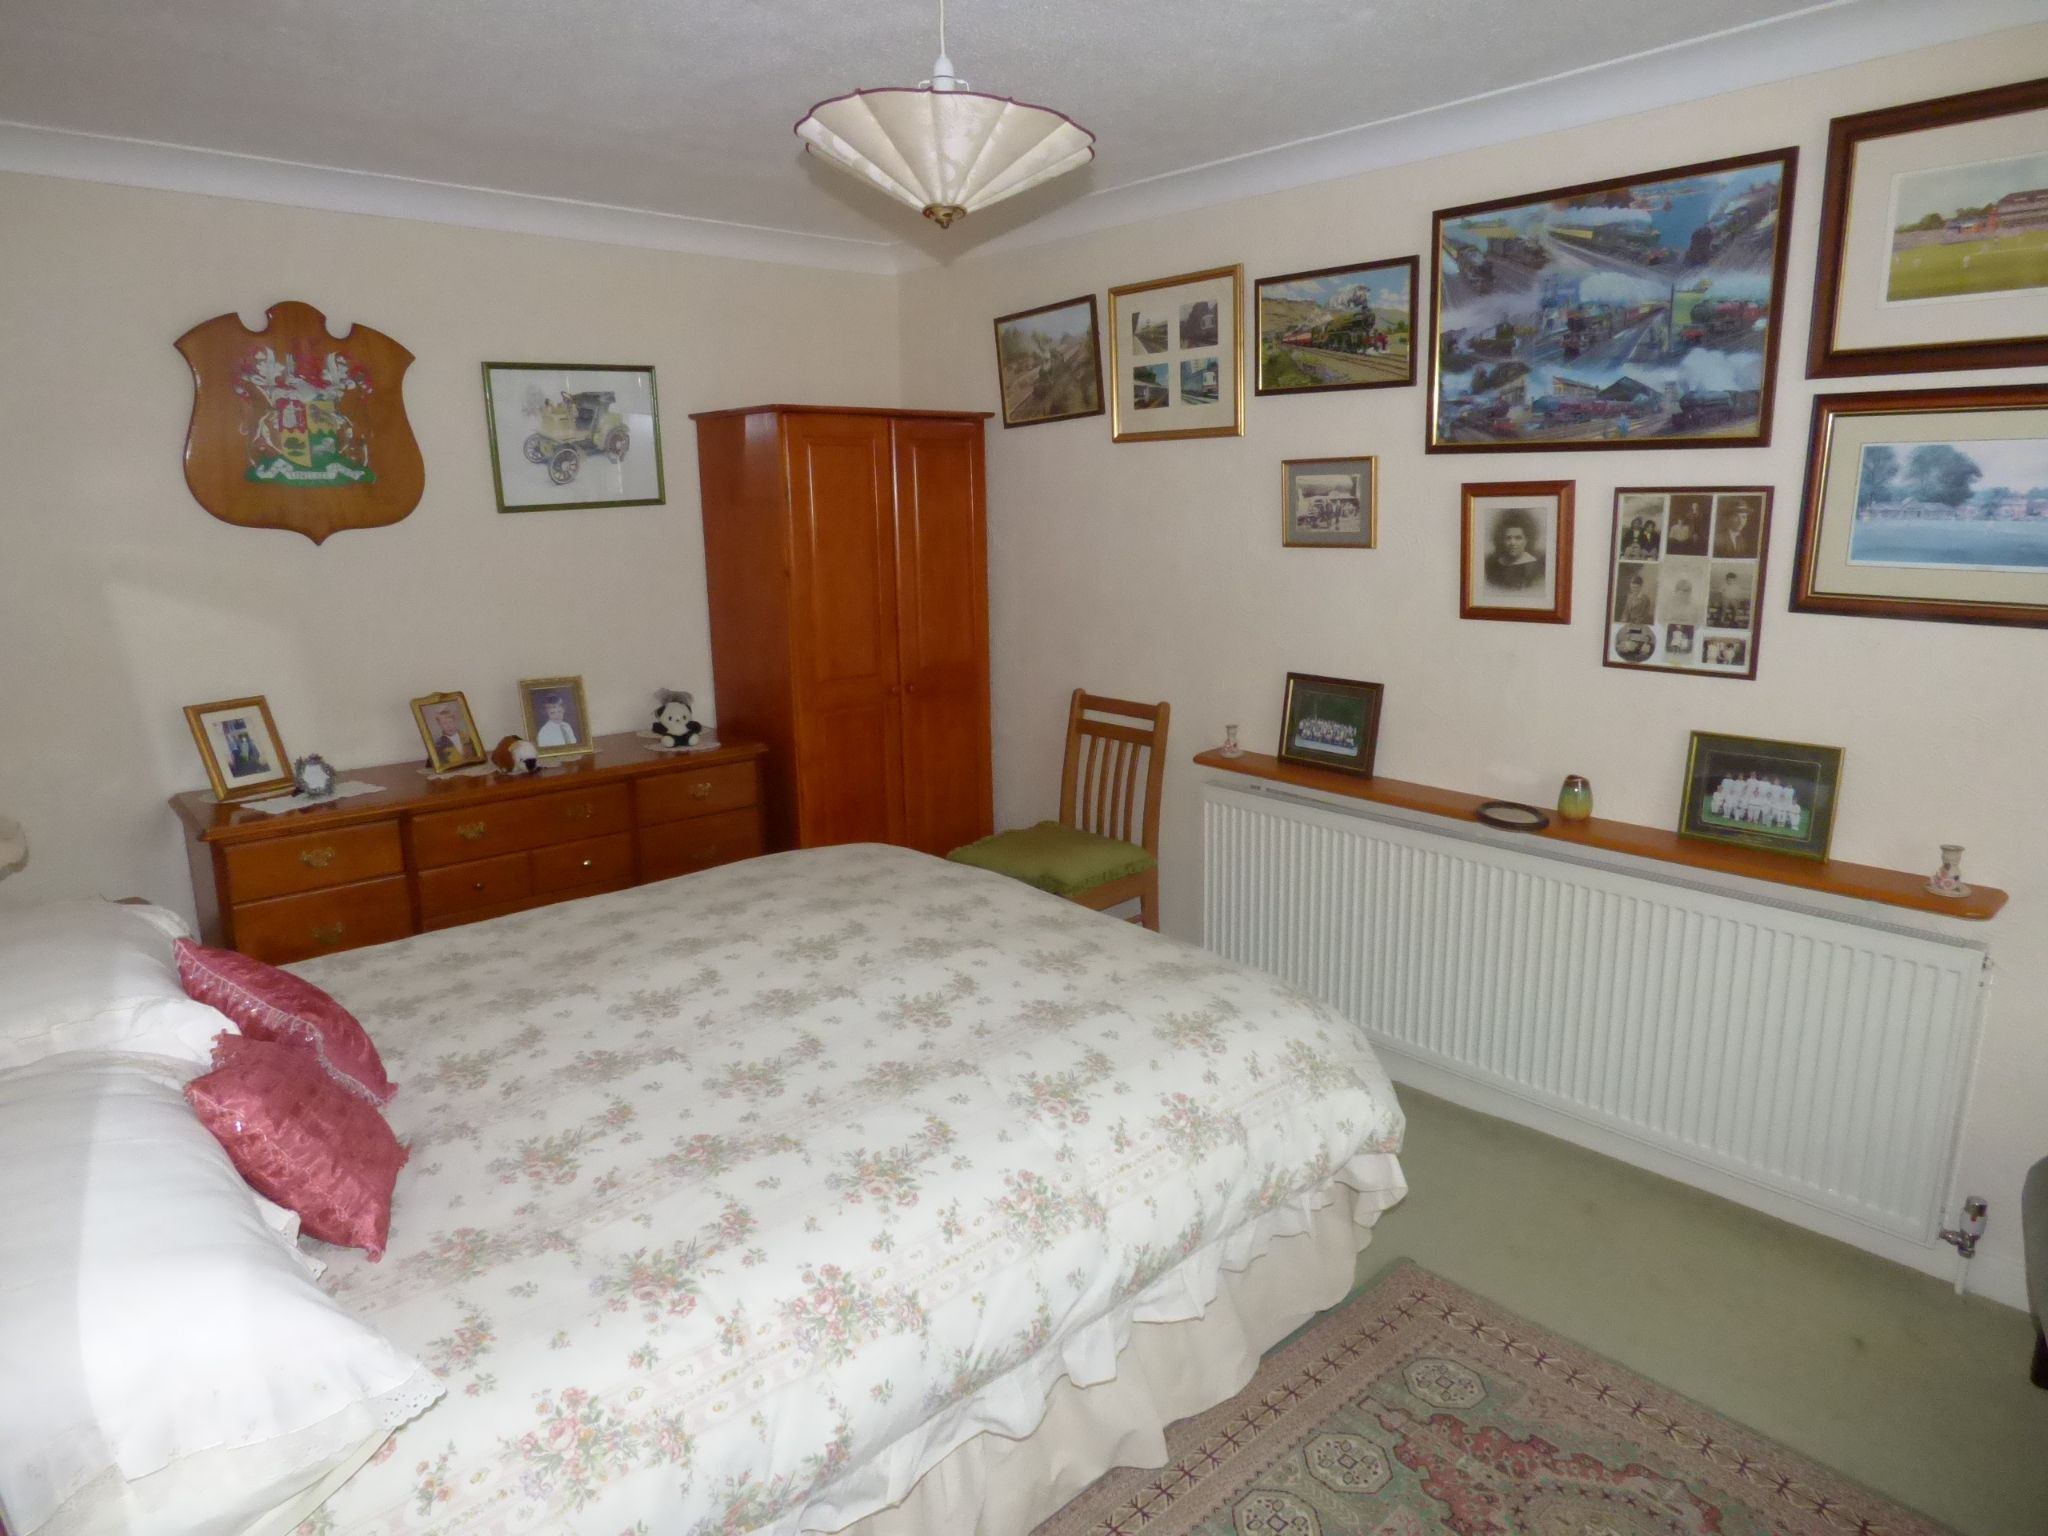 4 Bedroom Detached Bungalow For Sale - Photograph 12